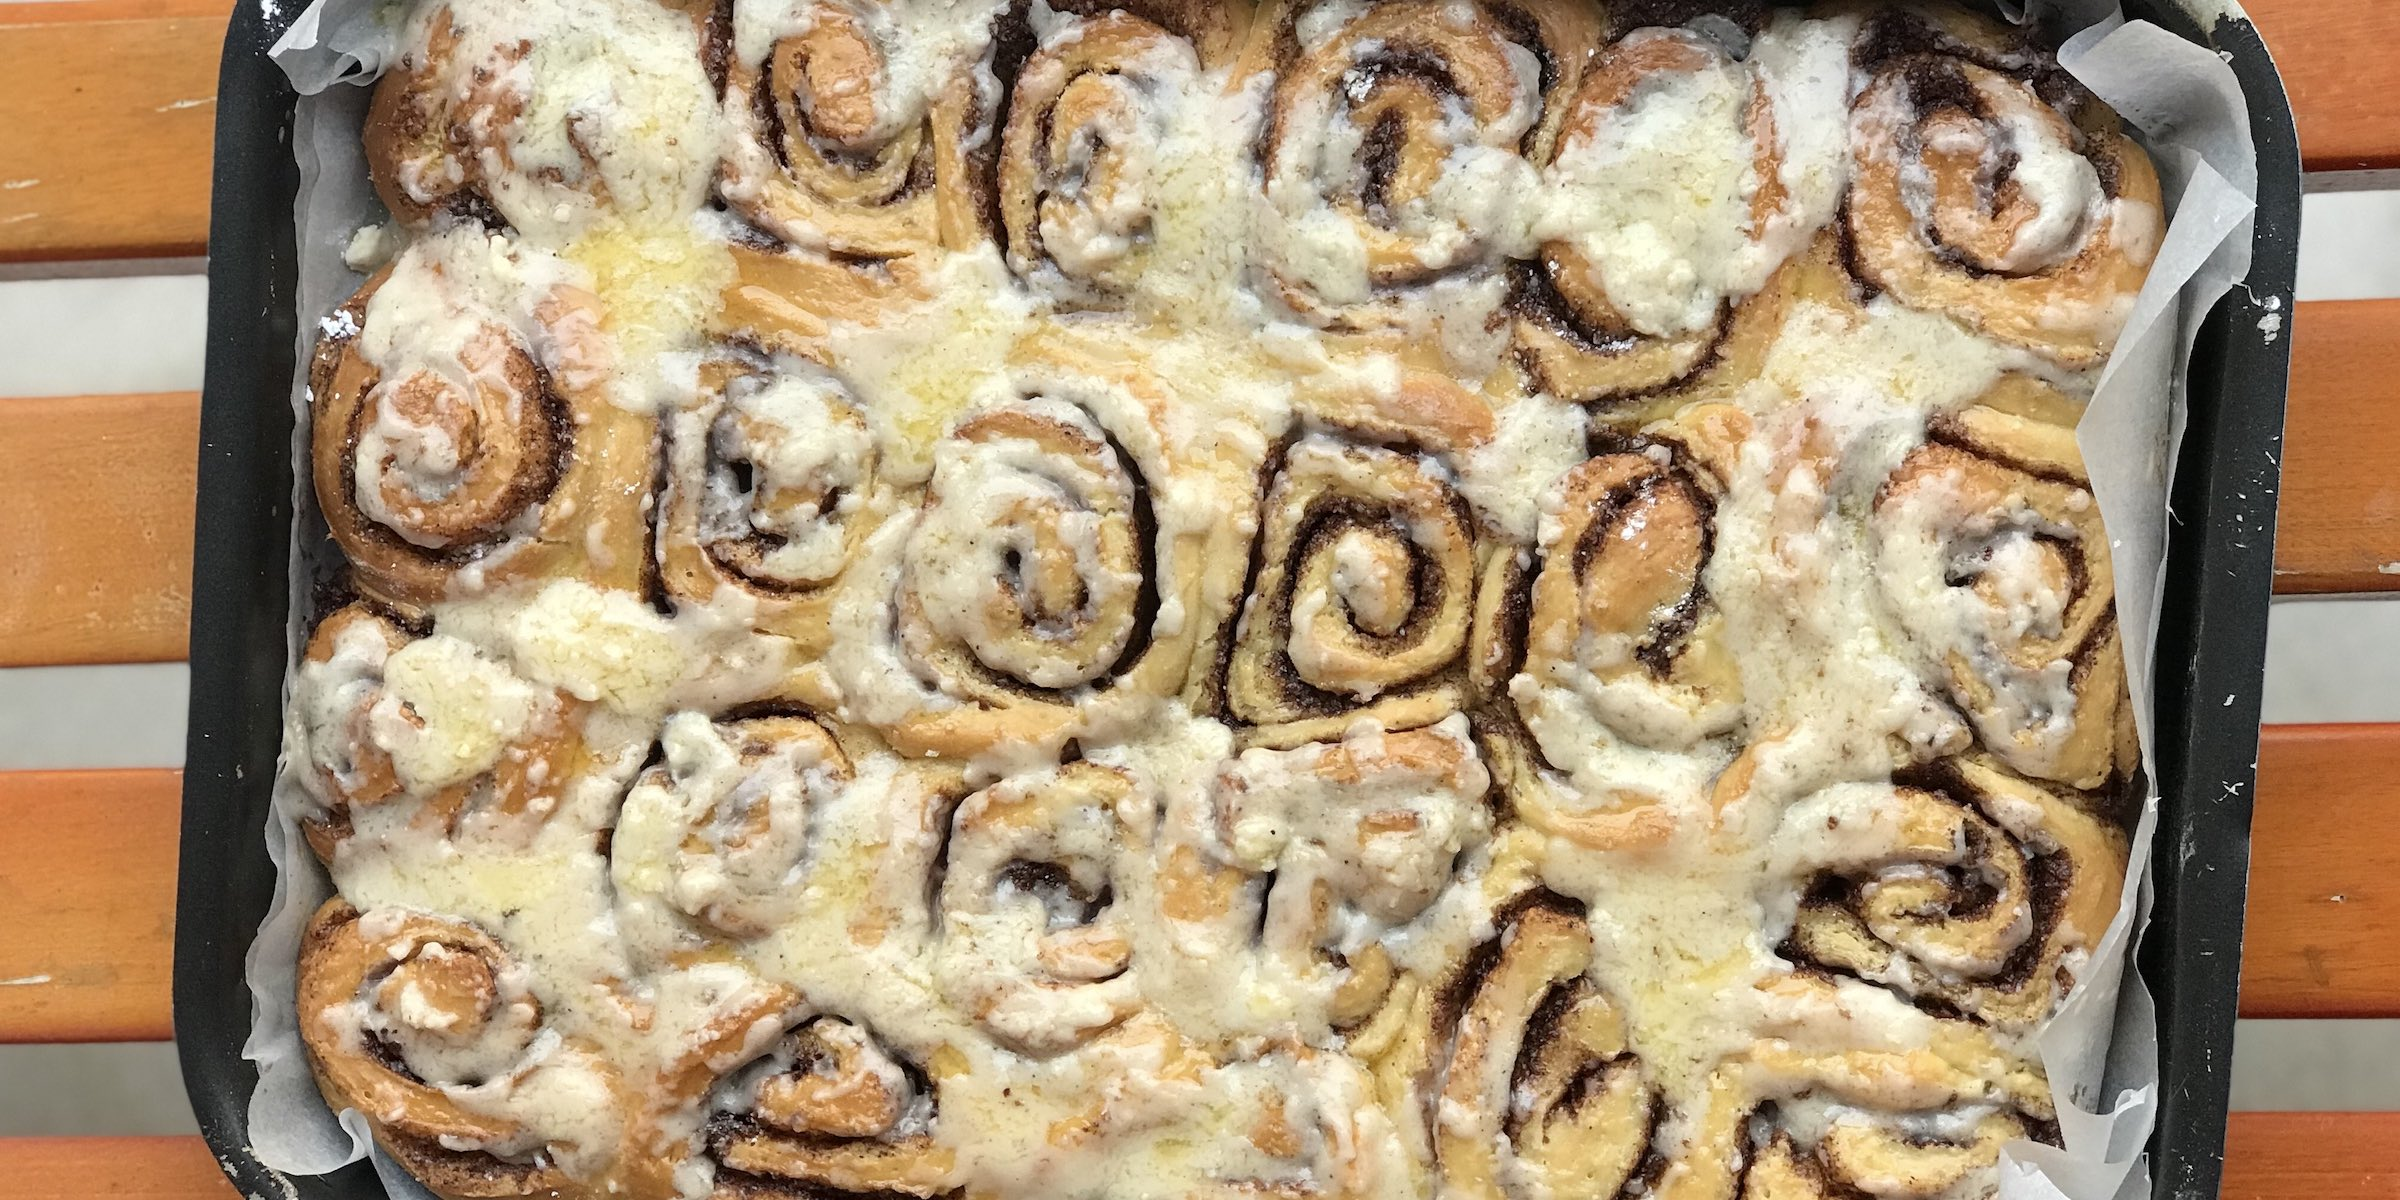 Homemade cinnamon rolls following recipe of Tastes of Lizzy T